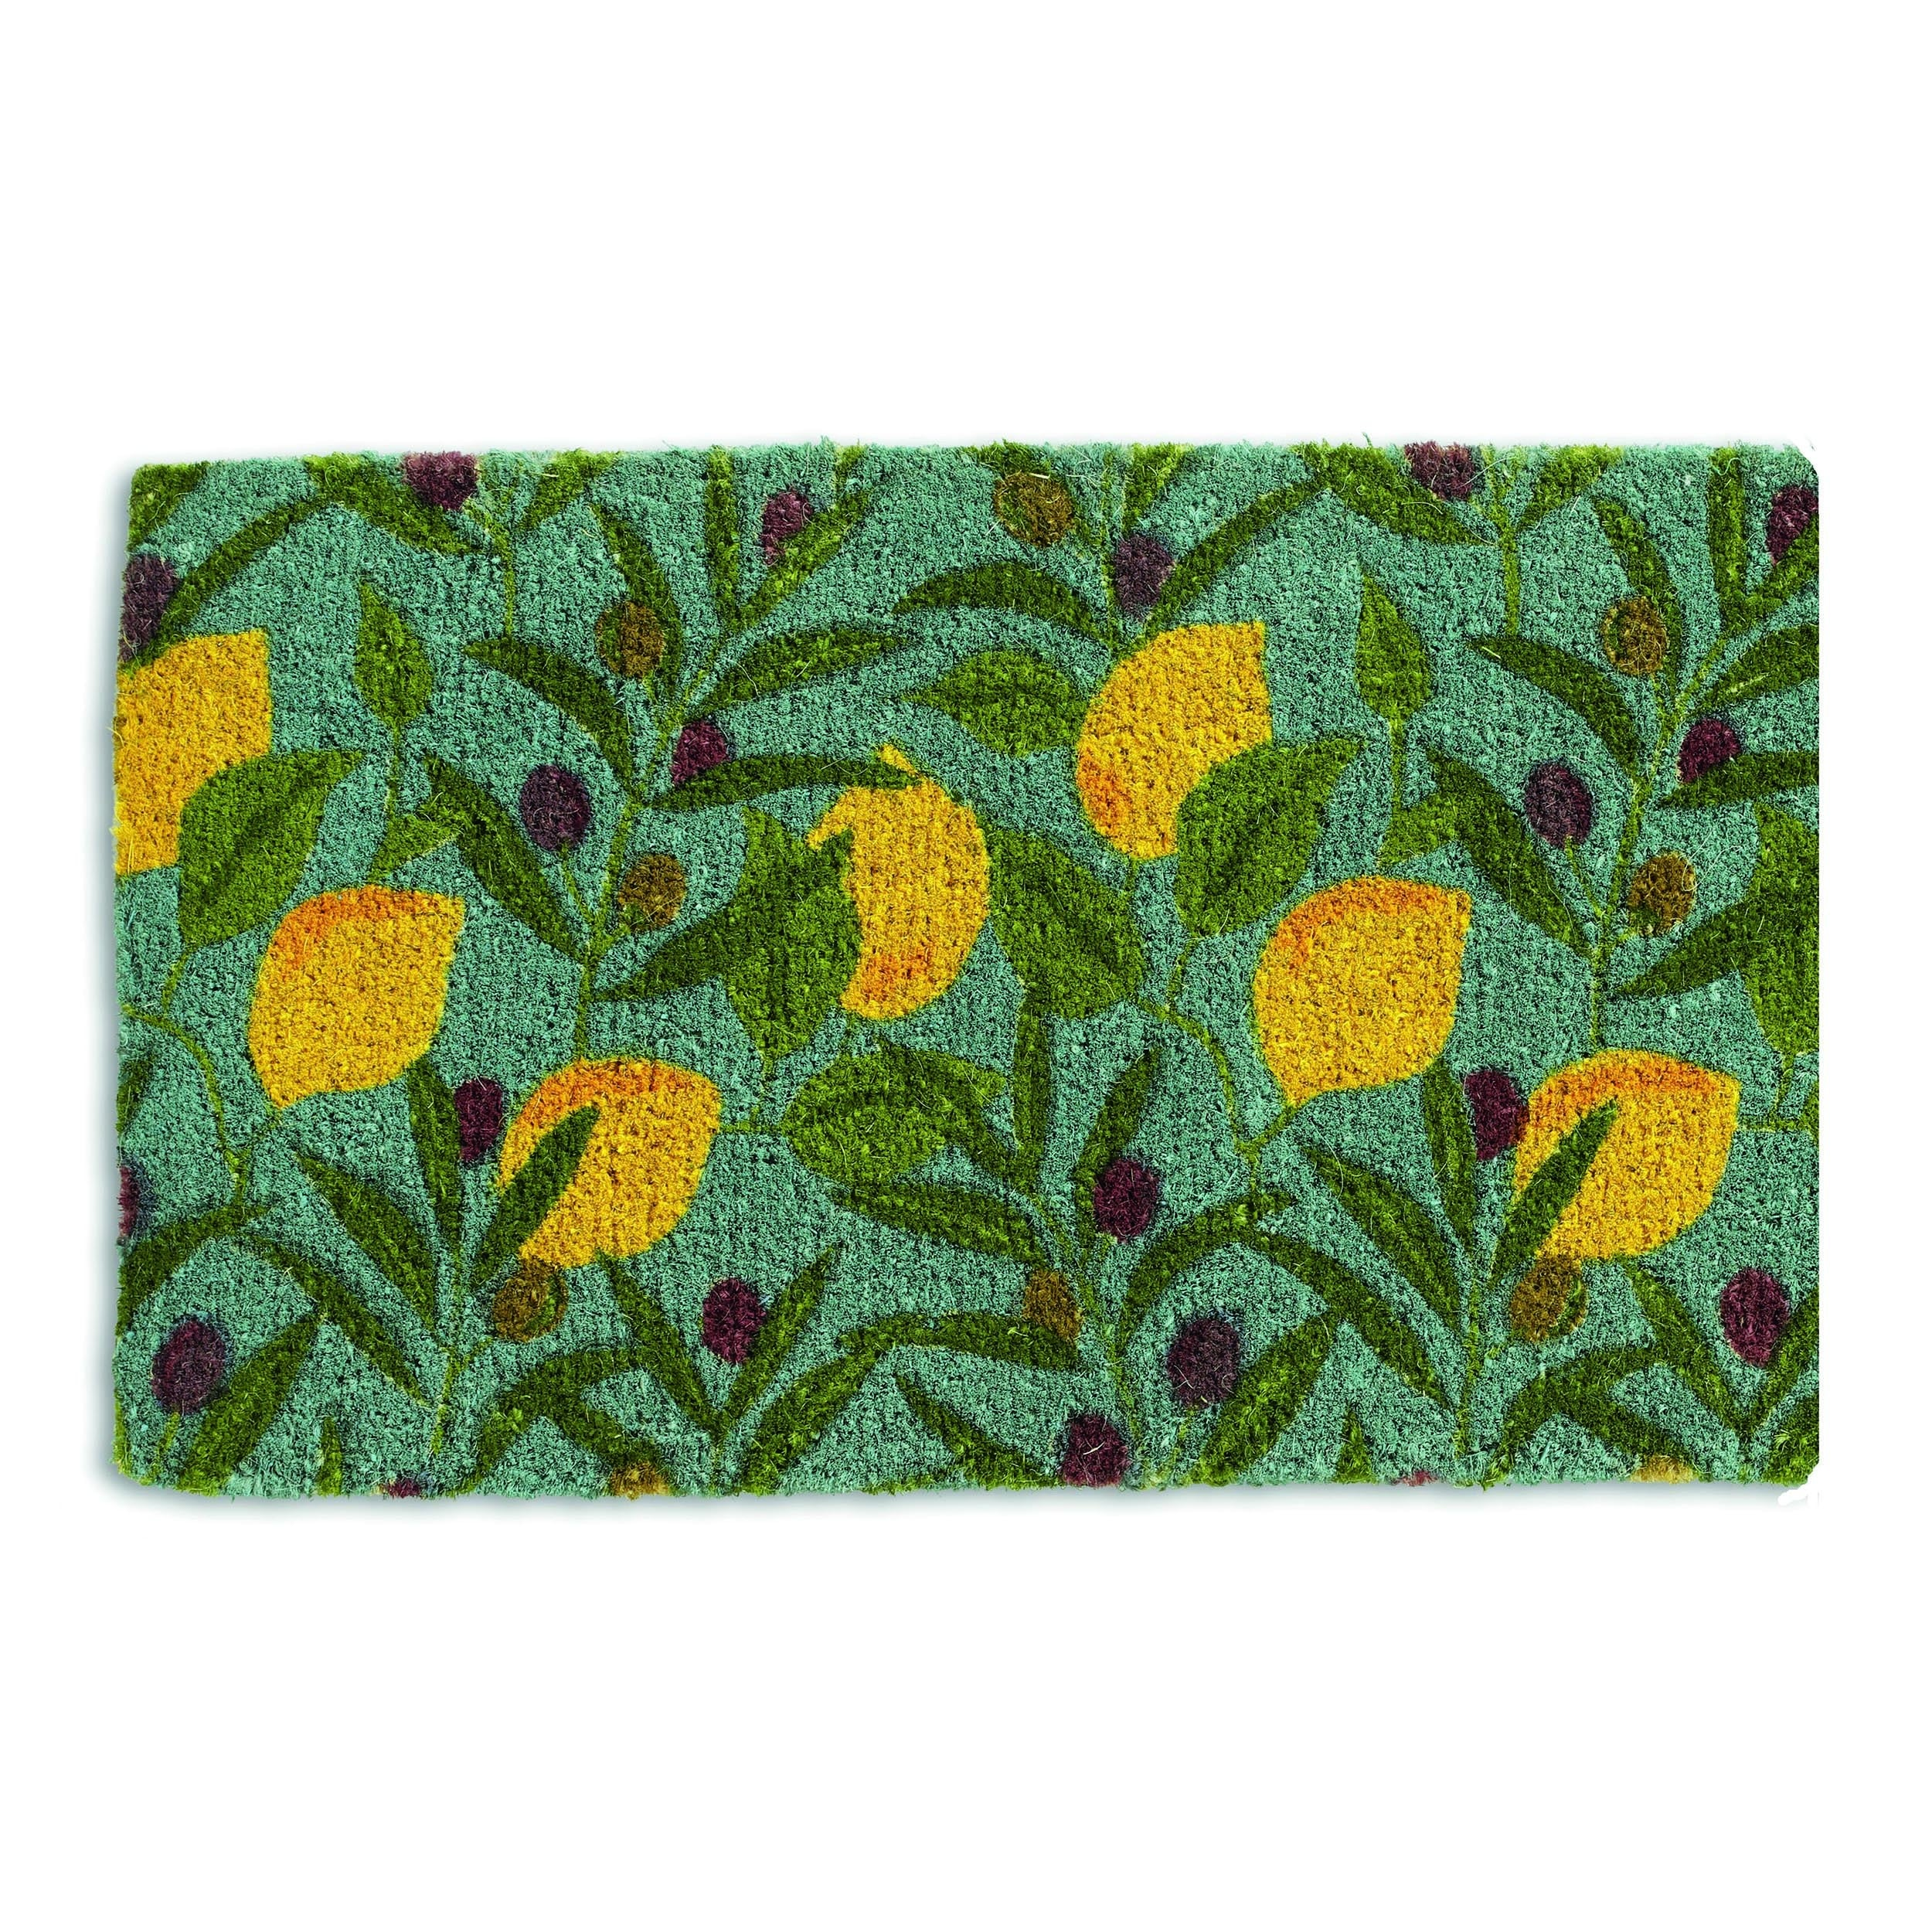 Lemons and Olives Coir Door Mat (18 x 30)